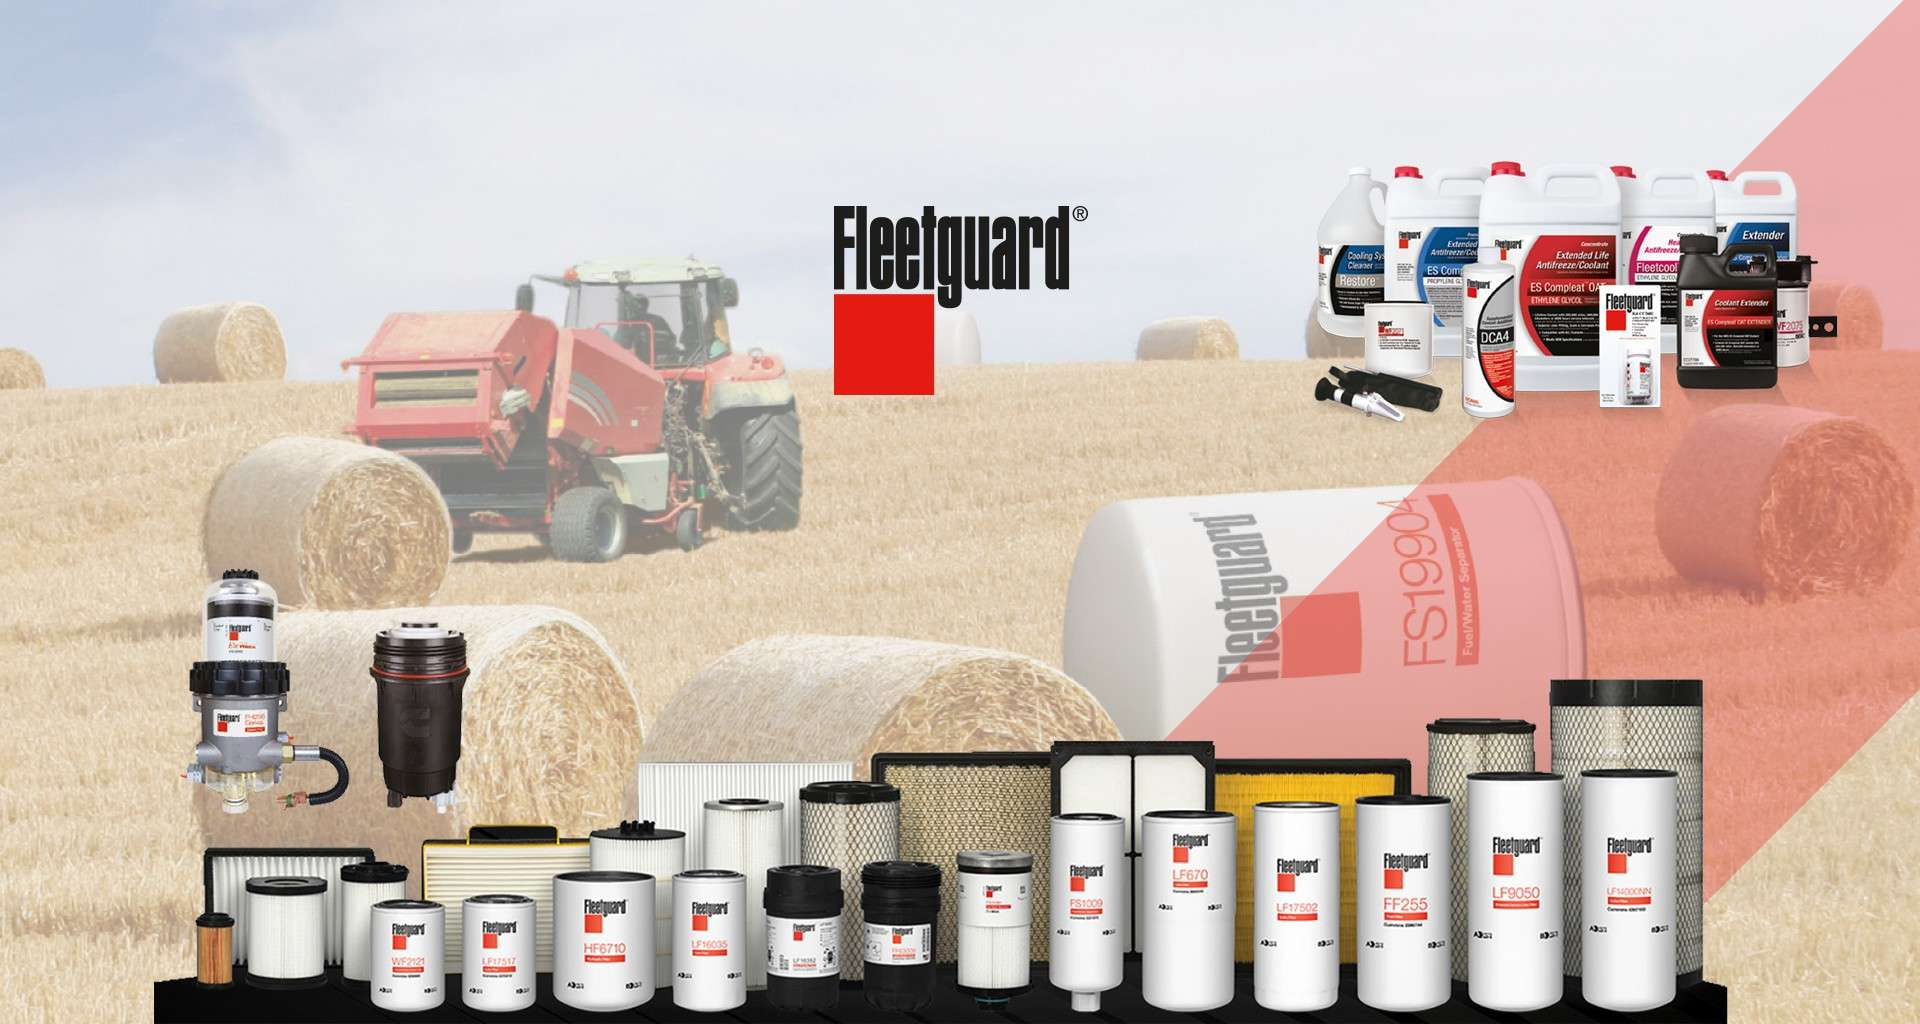 Fleetguard Filters Provide Superior Performance